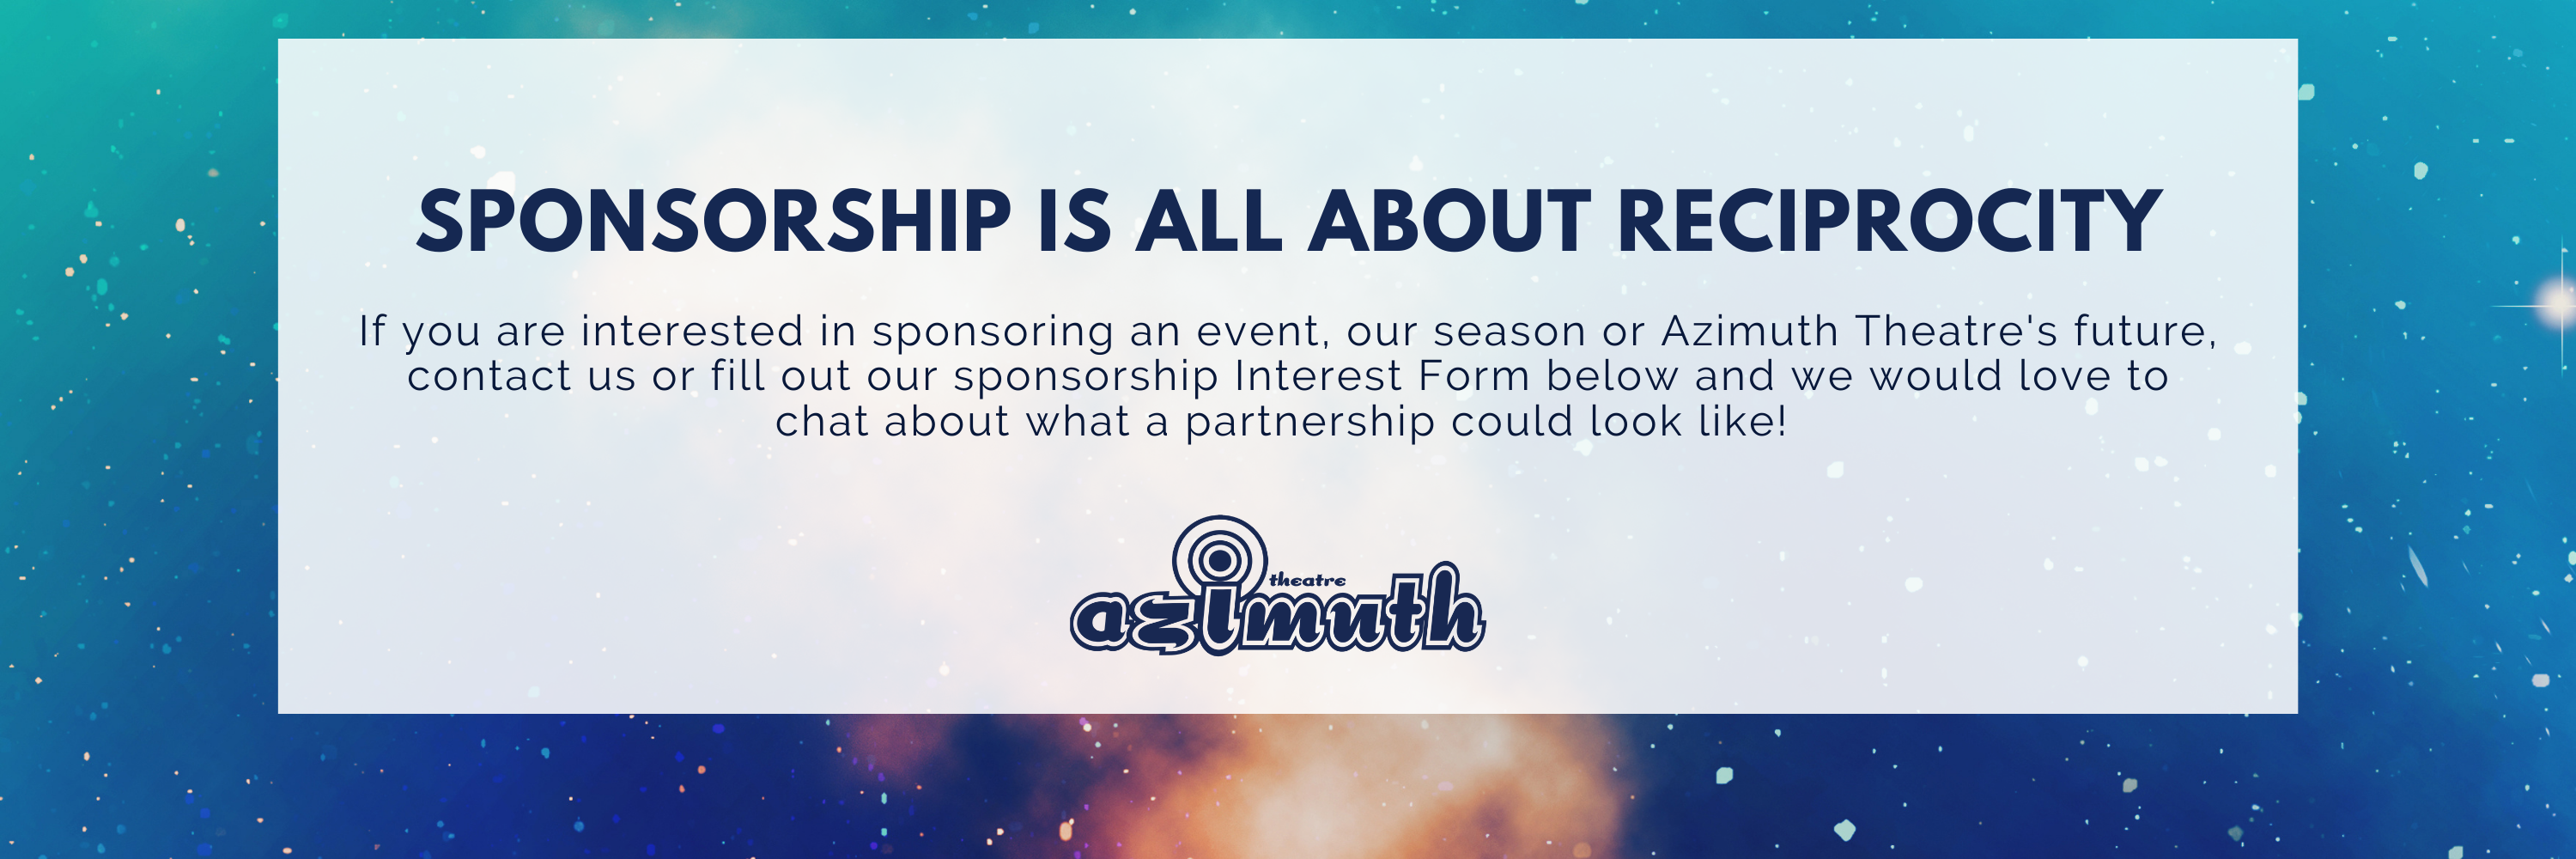 Sponsorship is all about reciprocity. If you are interested in sponsoring an event, our season or Azimuth Theatre's future, contact us or fill out our sponsorship Interest Form below and we would love to chat about what a partnership could look like!